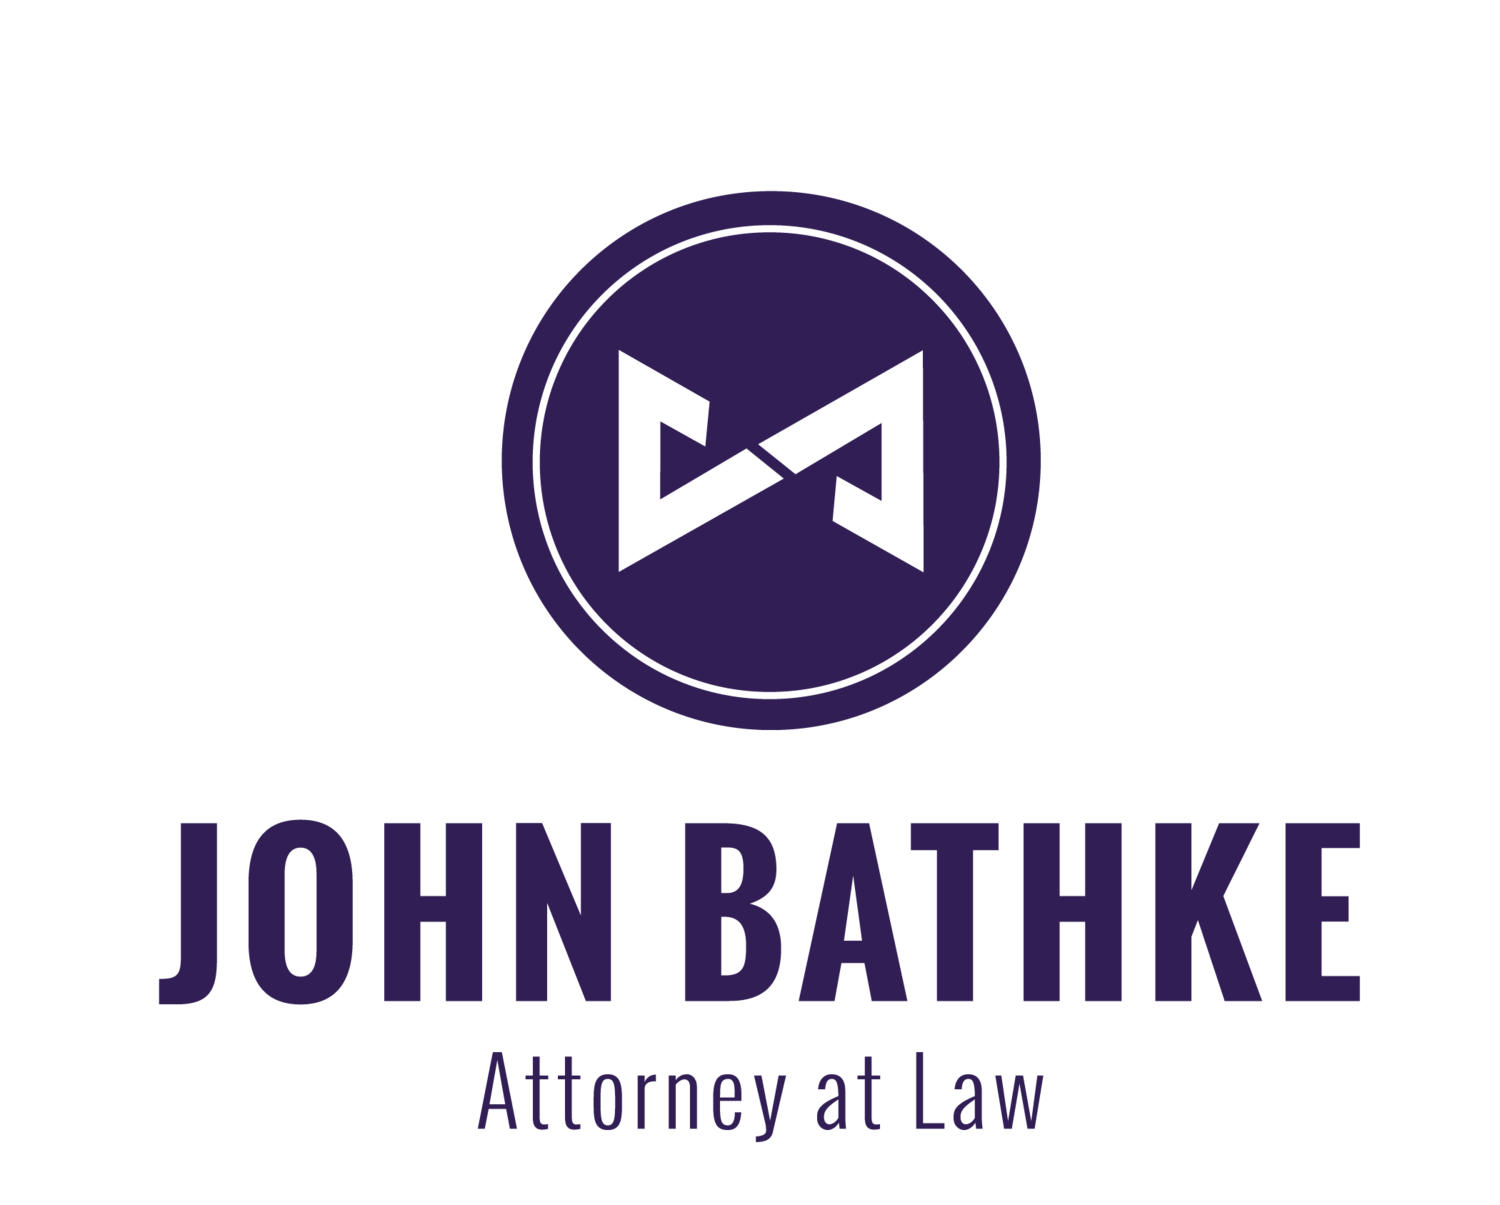 John Bathke, Attorney at Law